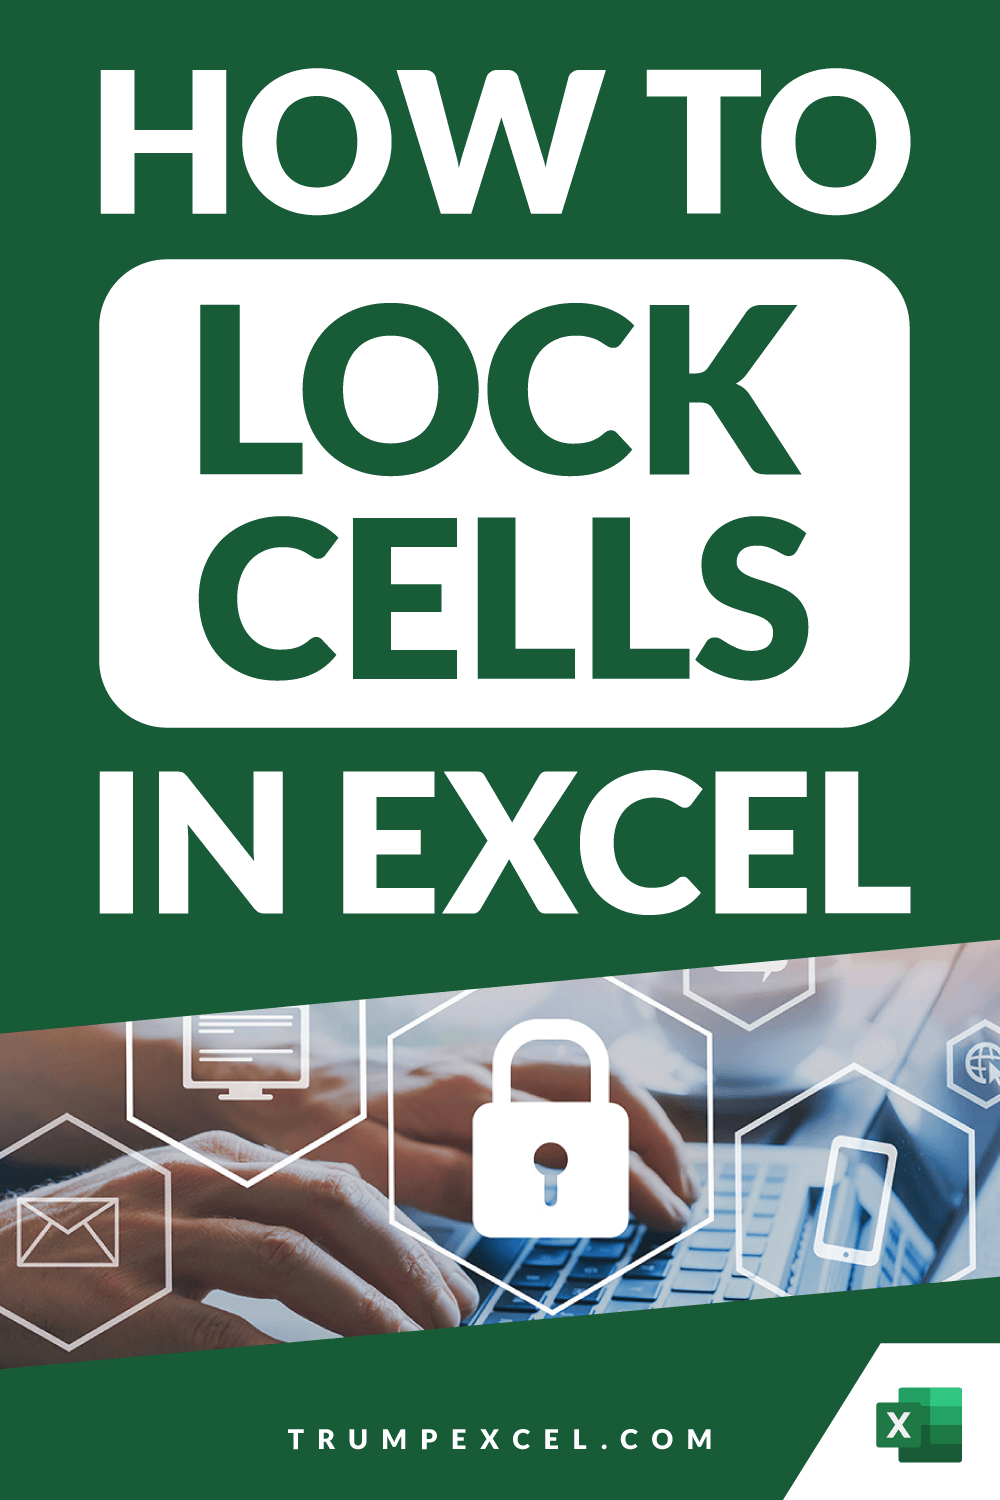 How to Lock Cells in Excel (Step-by-Step Tutorial